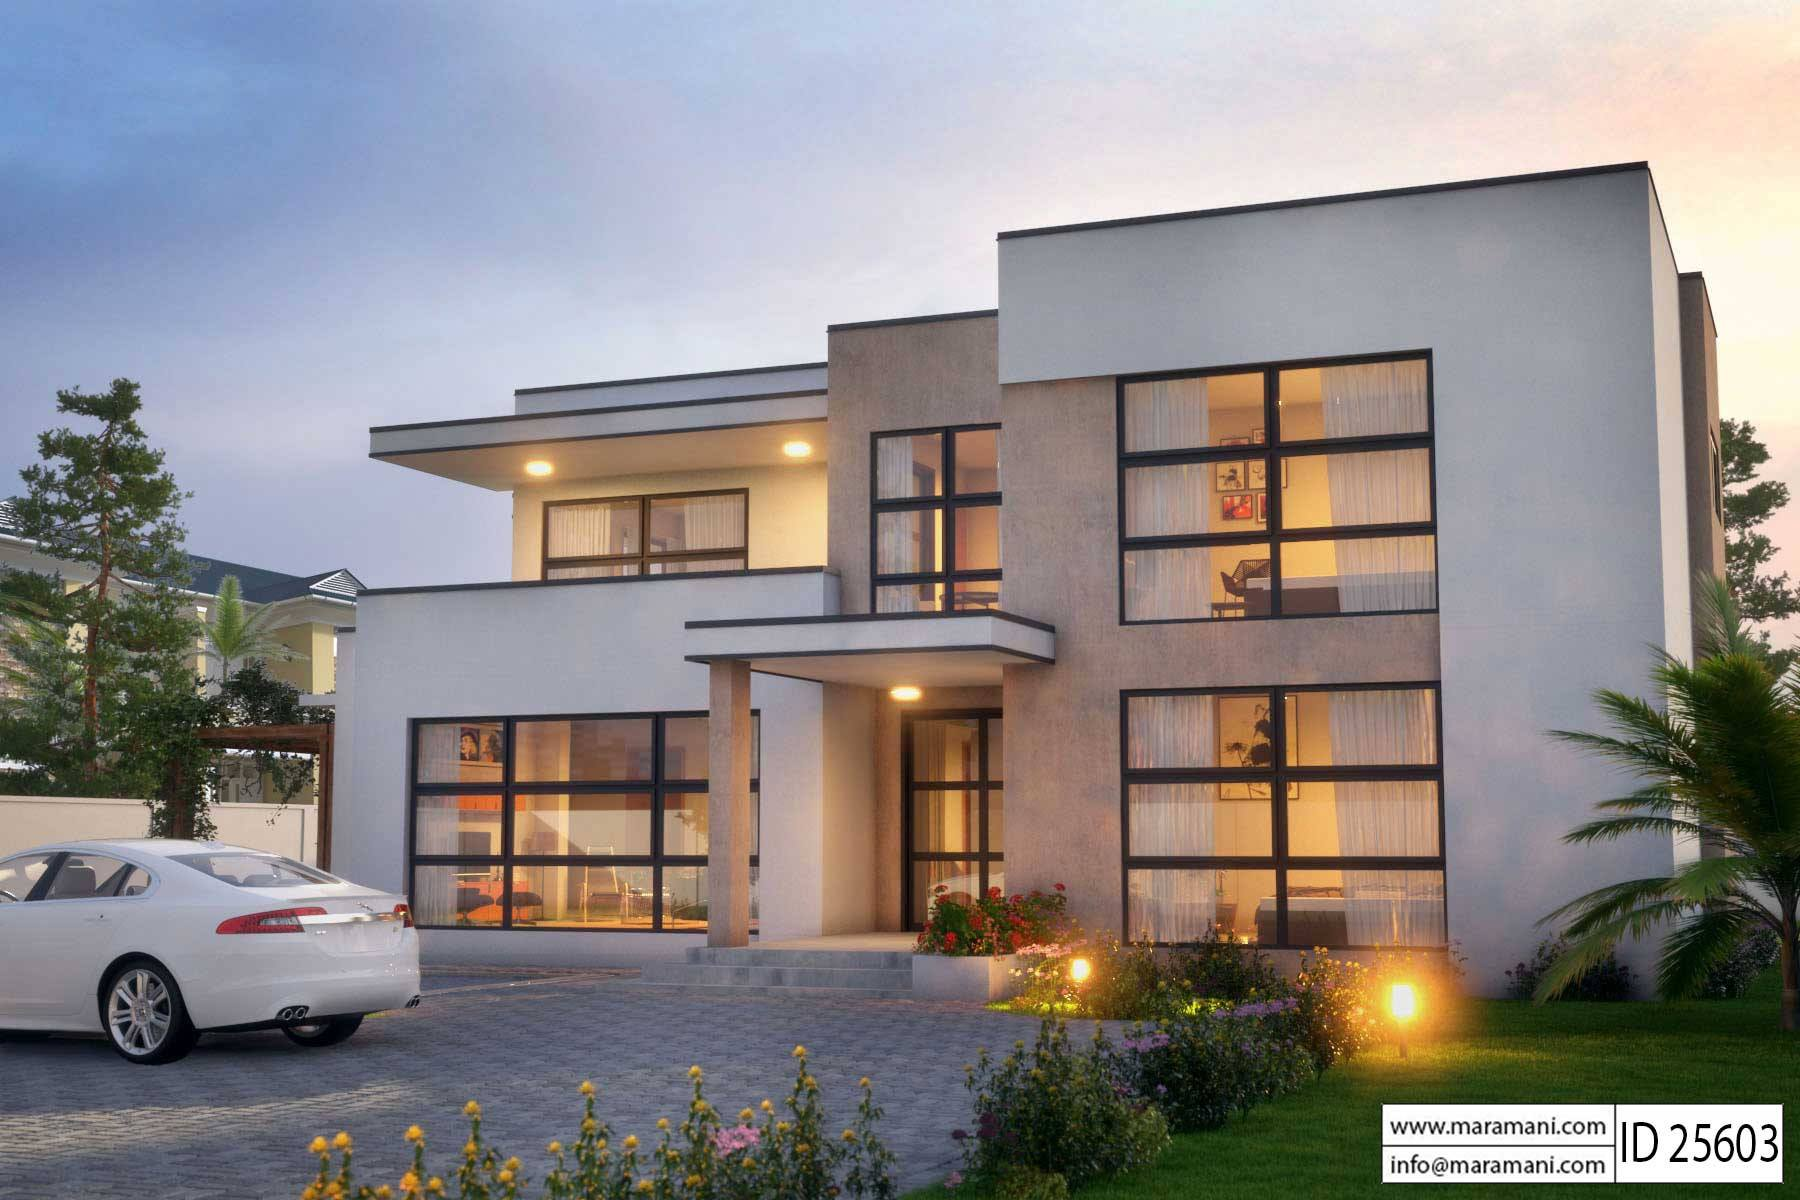 Modern 5 Bedroom House Design ID 25603 Floor Plans by Maramani – Basic 5 Bedroom House Plans